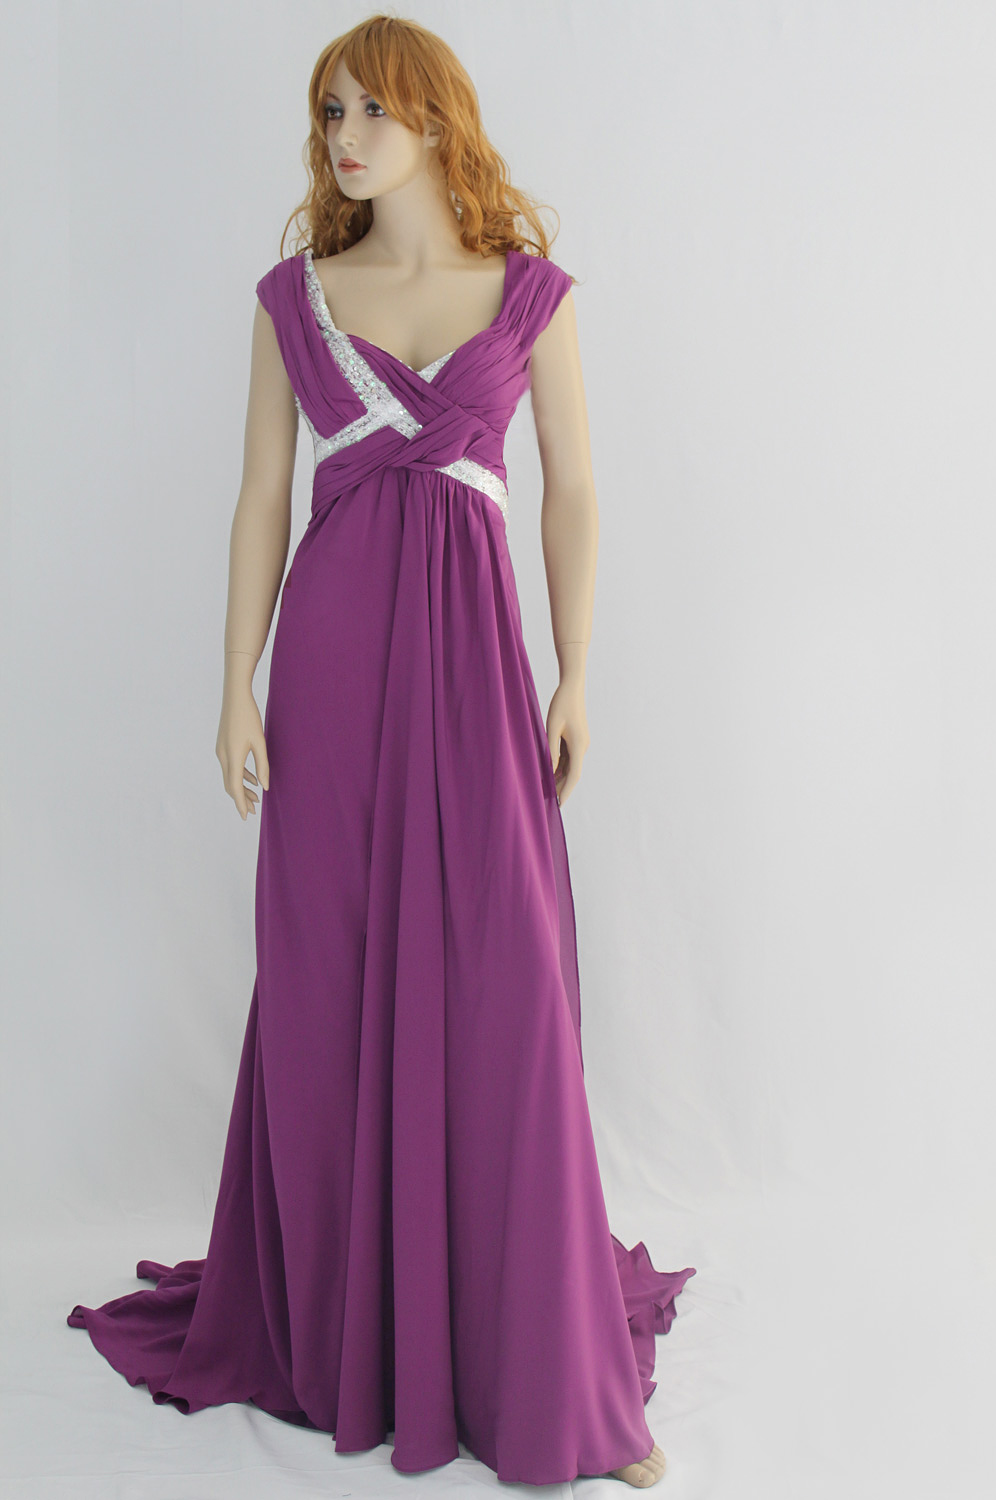 On sale !! eDressit purple Prom Gown Evening Dress (00090146e)